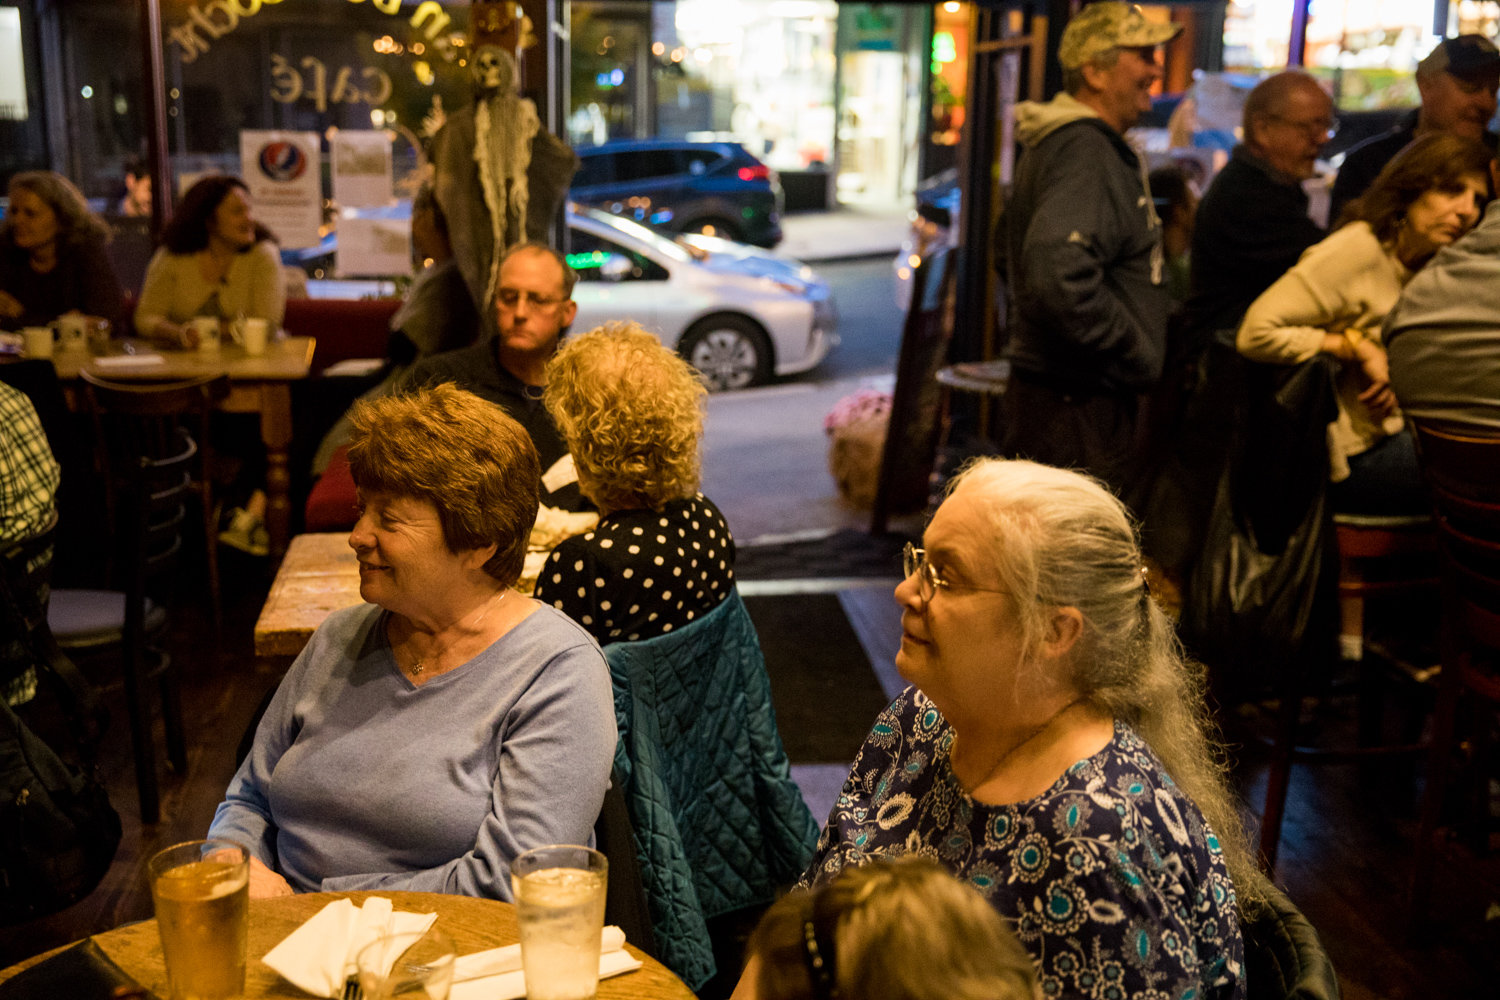 Patrons at An Beal Bocht Cafe listen to the musical stylings of Mary Courtney, a longtime regular performer at the West 238th Street establishment.